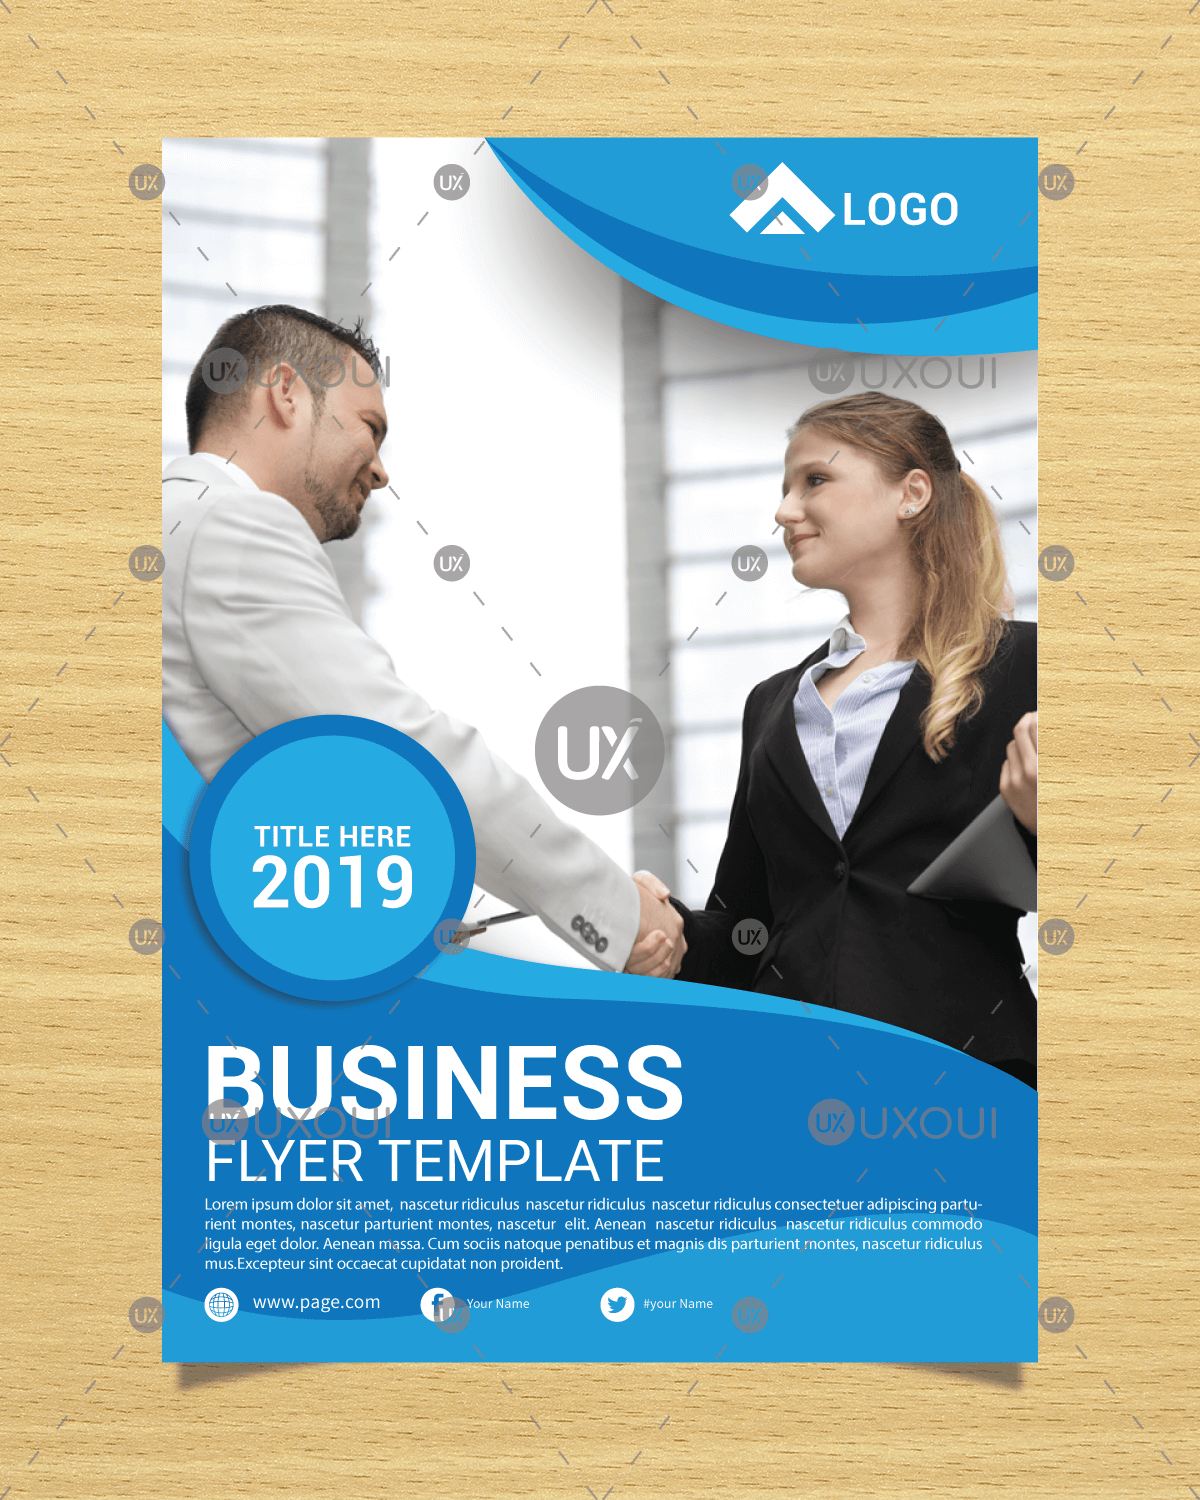 89 Free Printable Business Flyer Template Templates For Business Flyer Template Cards Design Templates